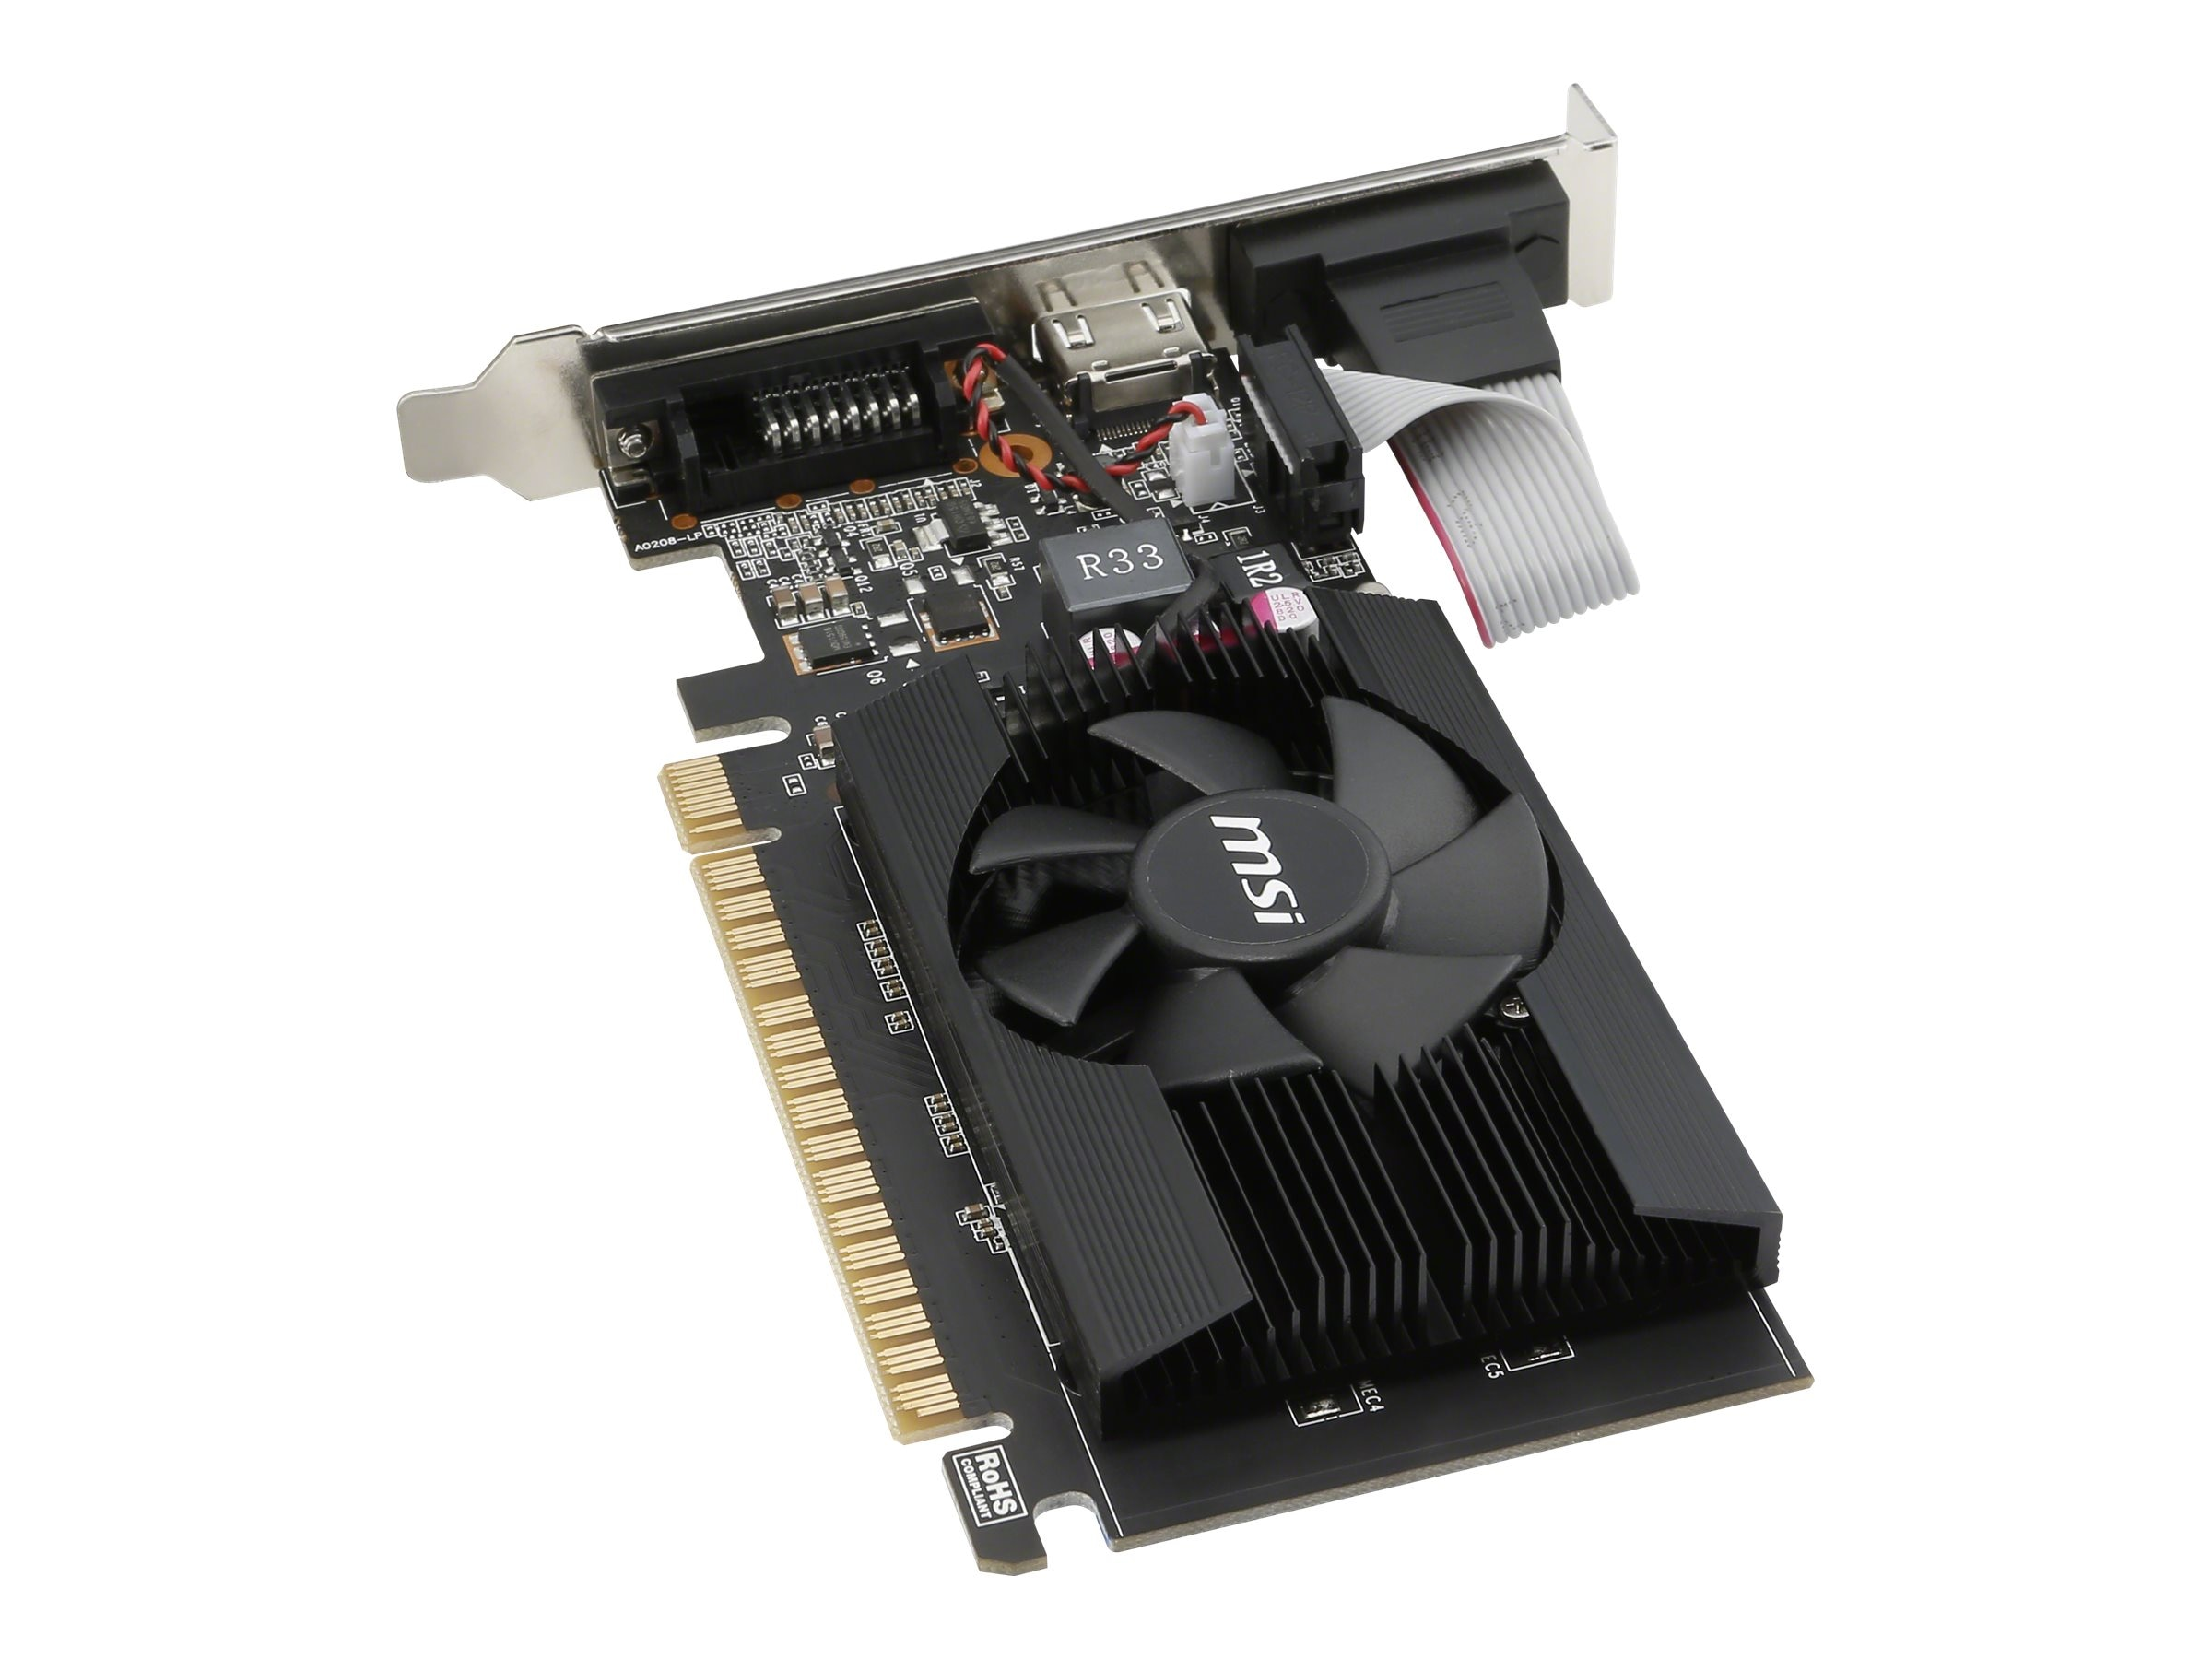 Microstar GeForce GT 710 PCIe 2.0 x16 Graphics Card, 2GB DDR3, GT 710 2GD3 LP